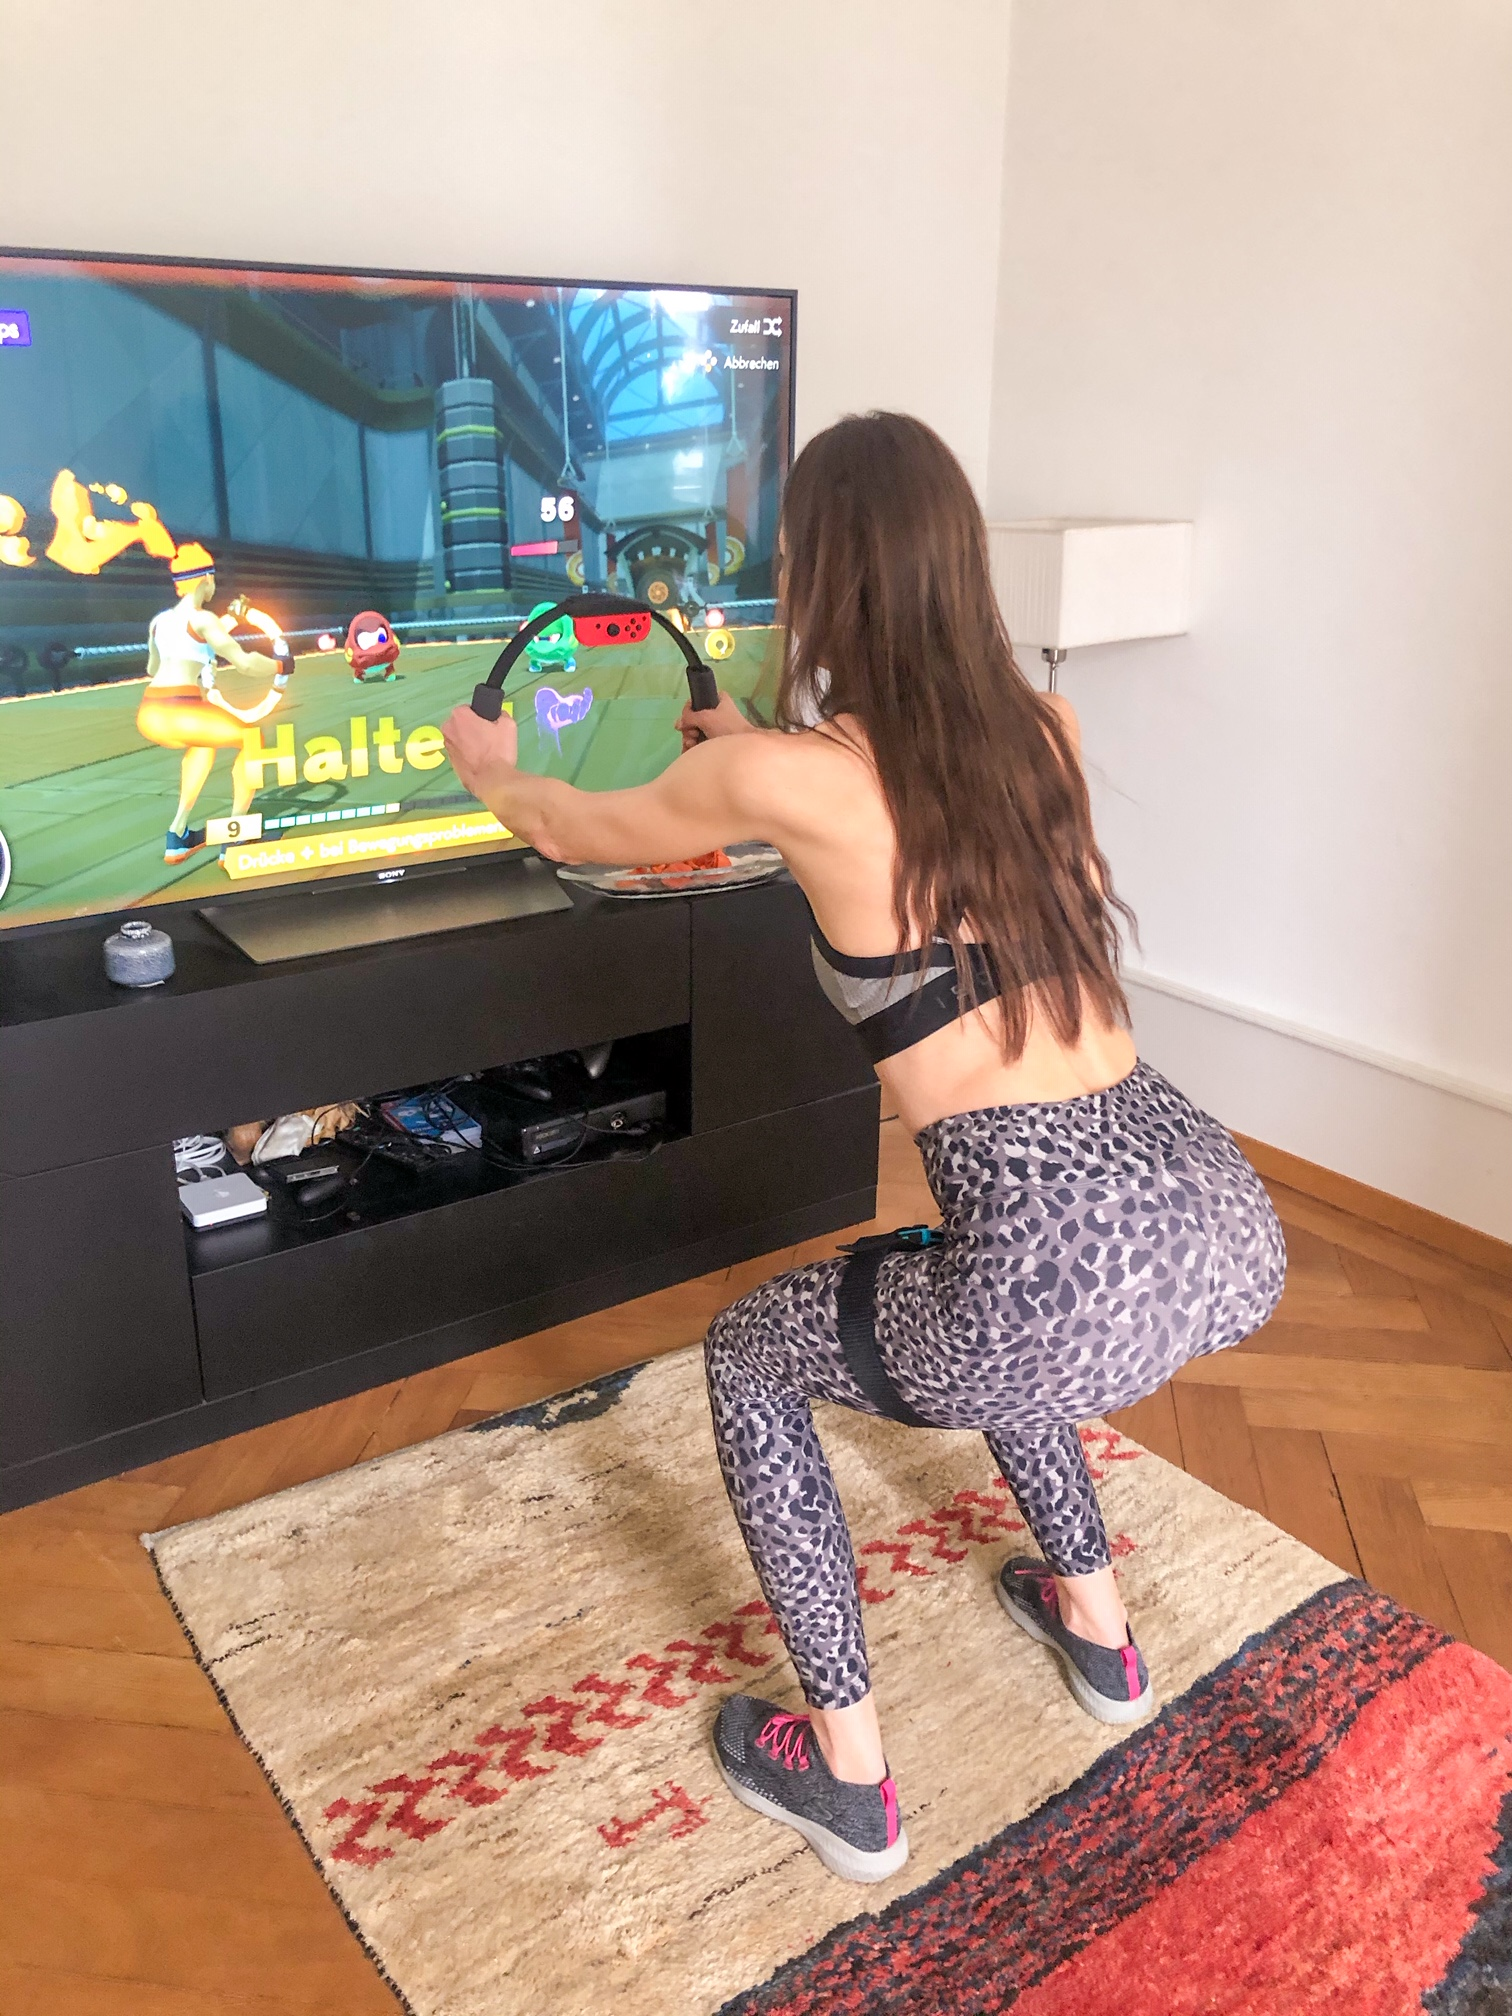 Nintendo Switch Ringfitadventure Squats